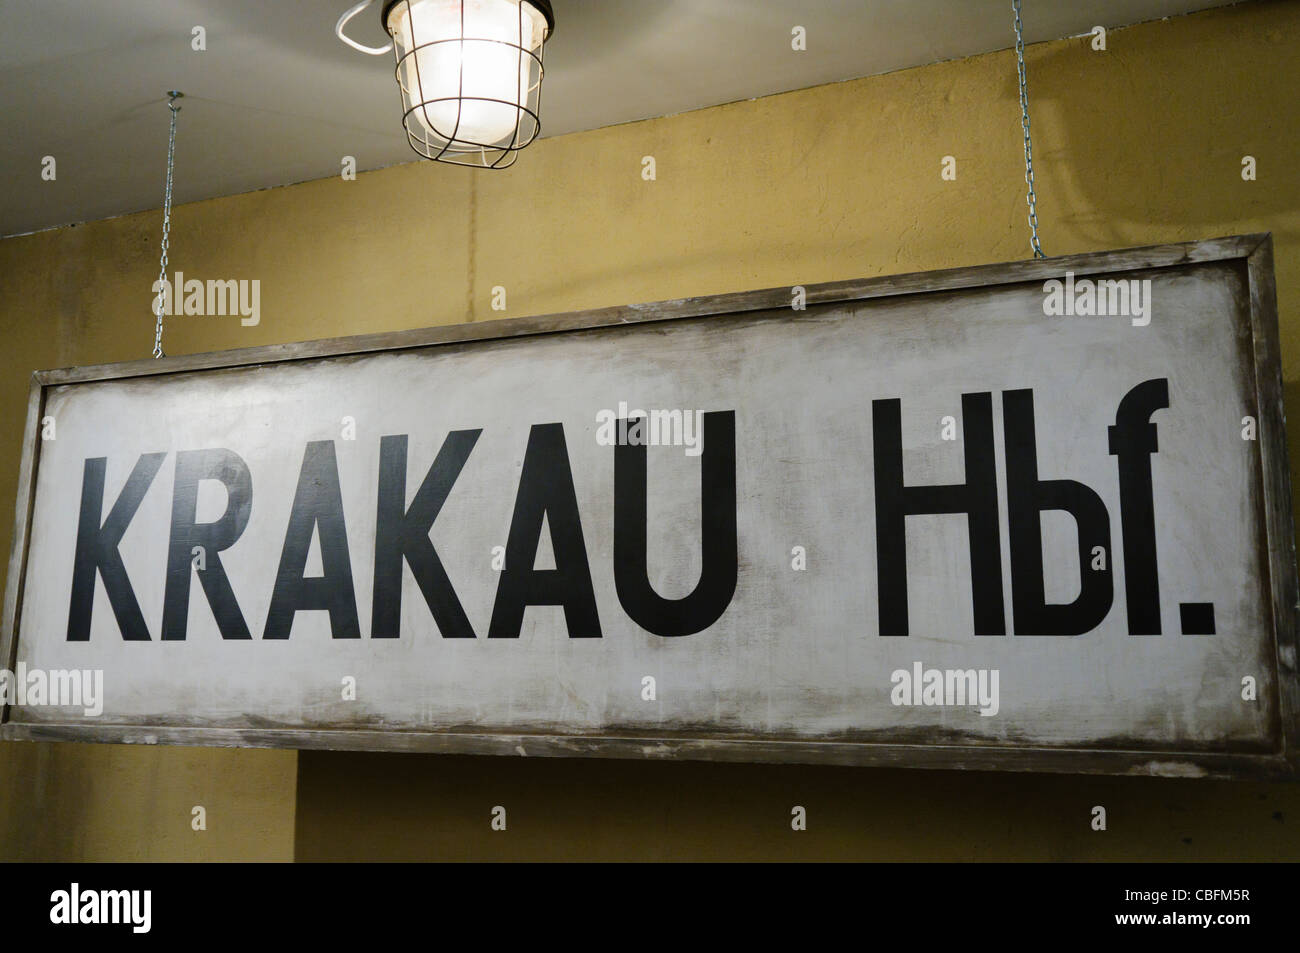 Hbf Stock Photos & Hbf Stock Images - Alamy